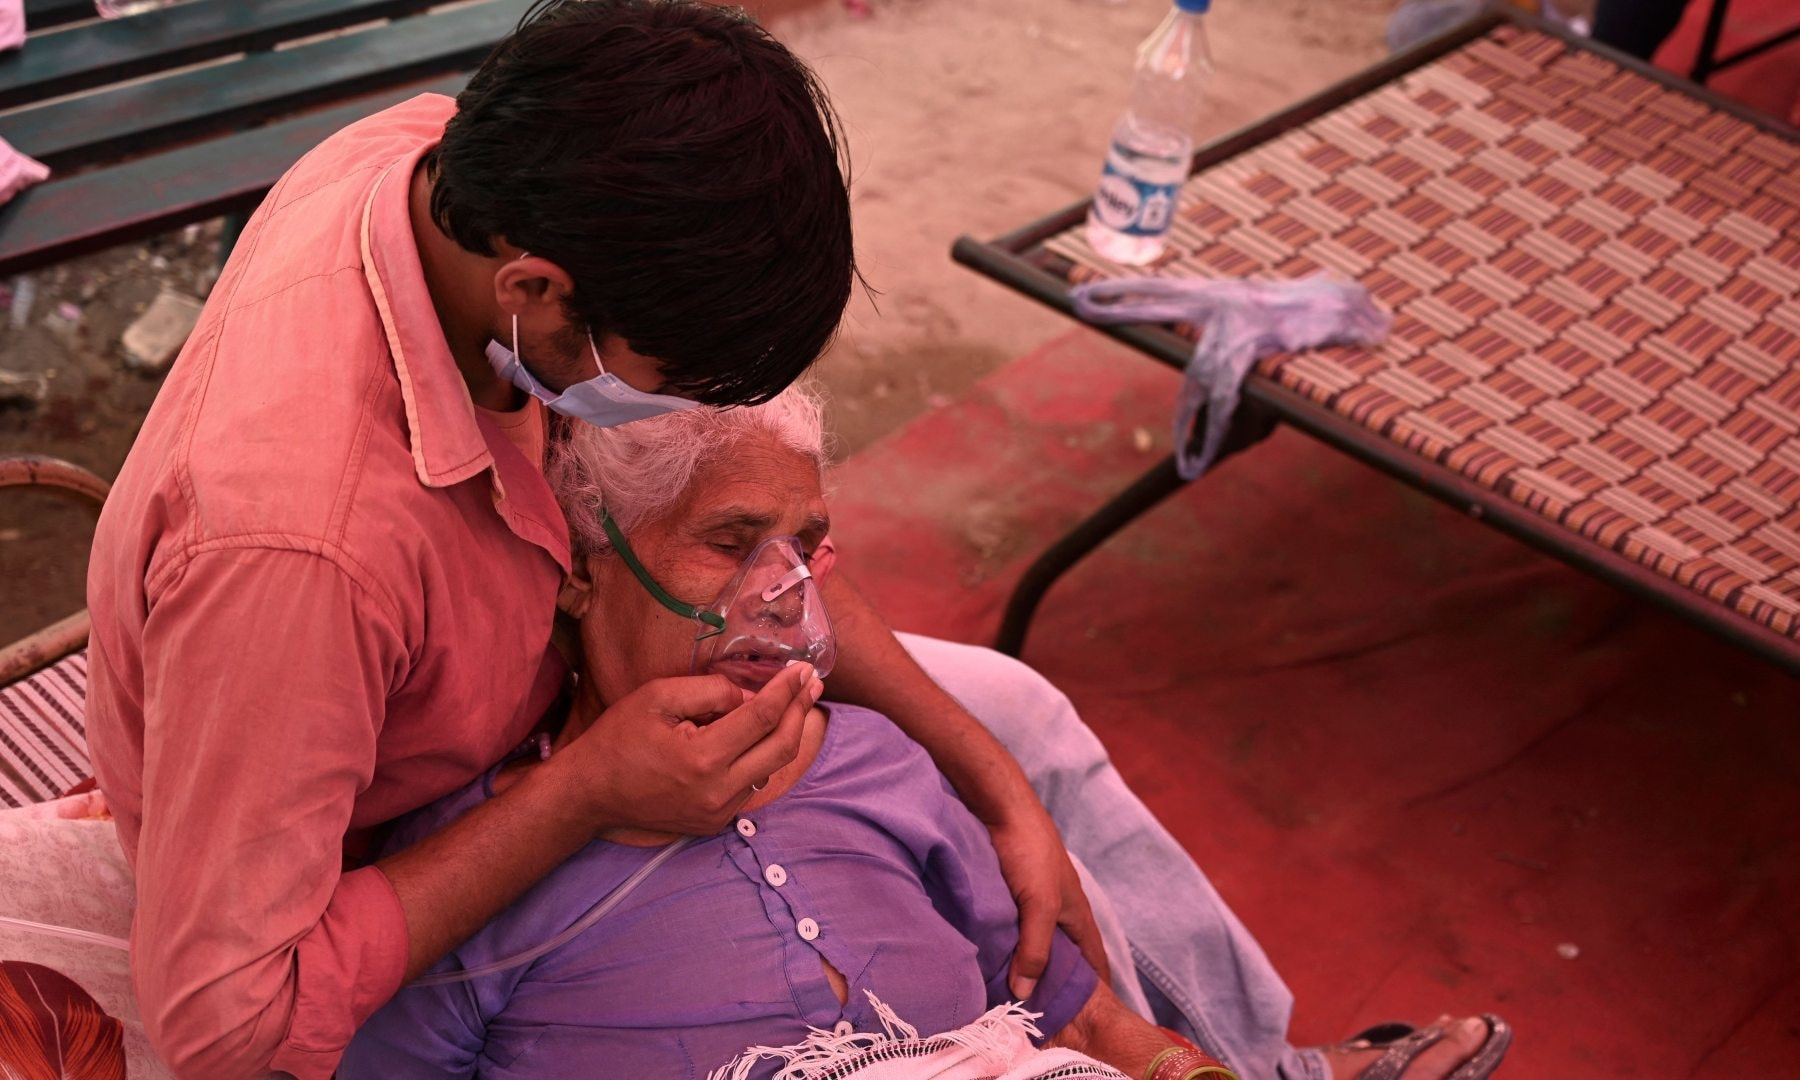 A family member comforts a patient breathing with the help of oxygen being provided by a Gurdwara, a place of worship for Sikhs, under a tent installed along the roadside amid Covid-19 pandemic in Ghaziabad on May 4. — AFP